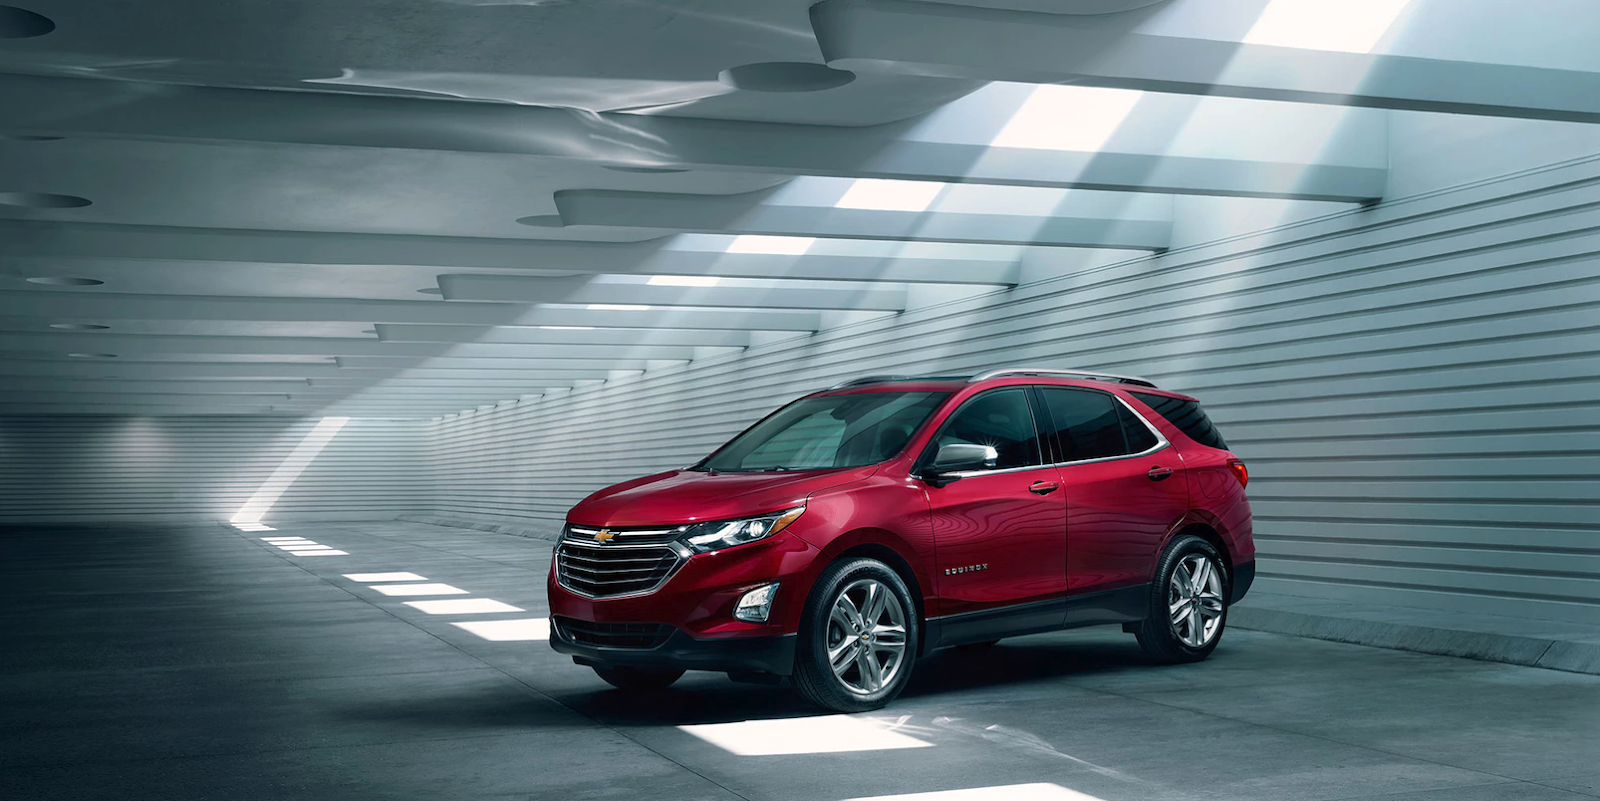 Equinox For Sale >> 2018 Chevrolet Equinox For Sale In Norman Oklahoma